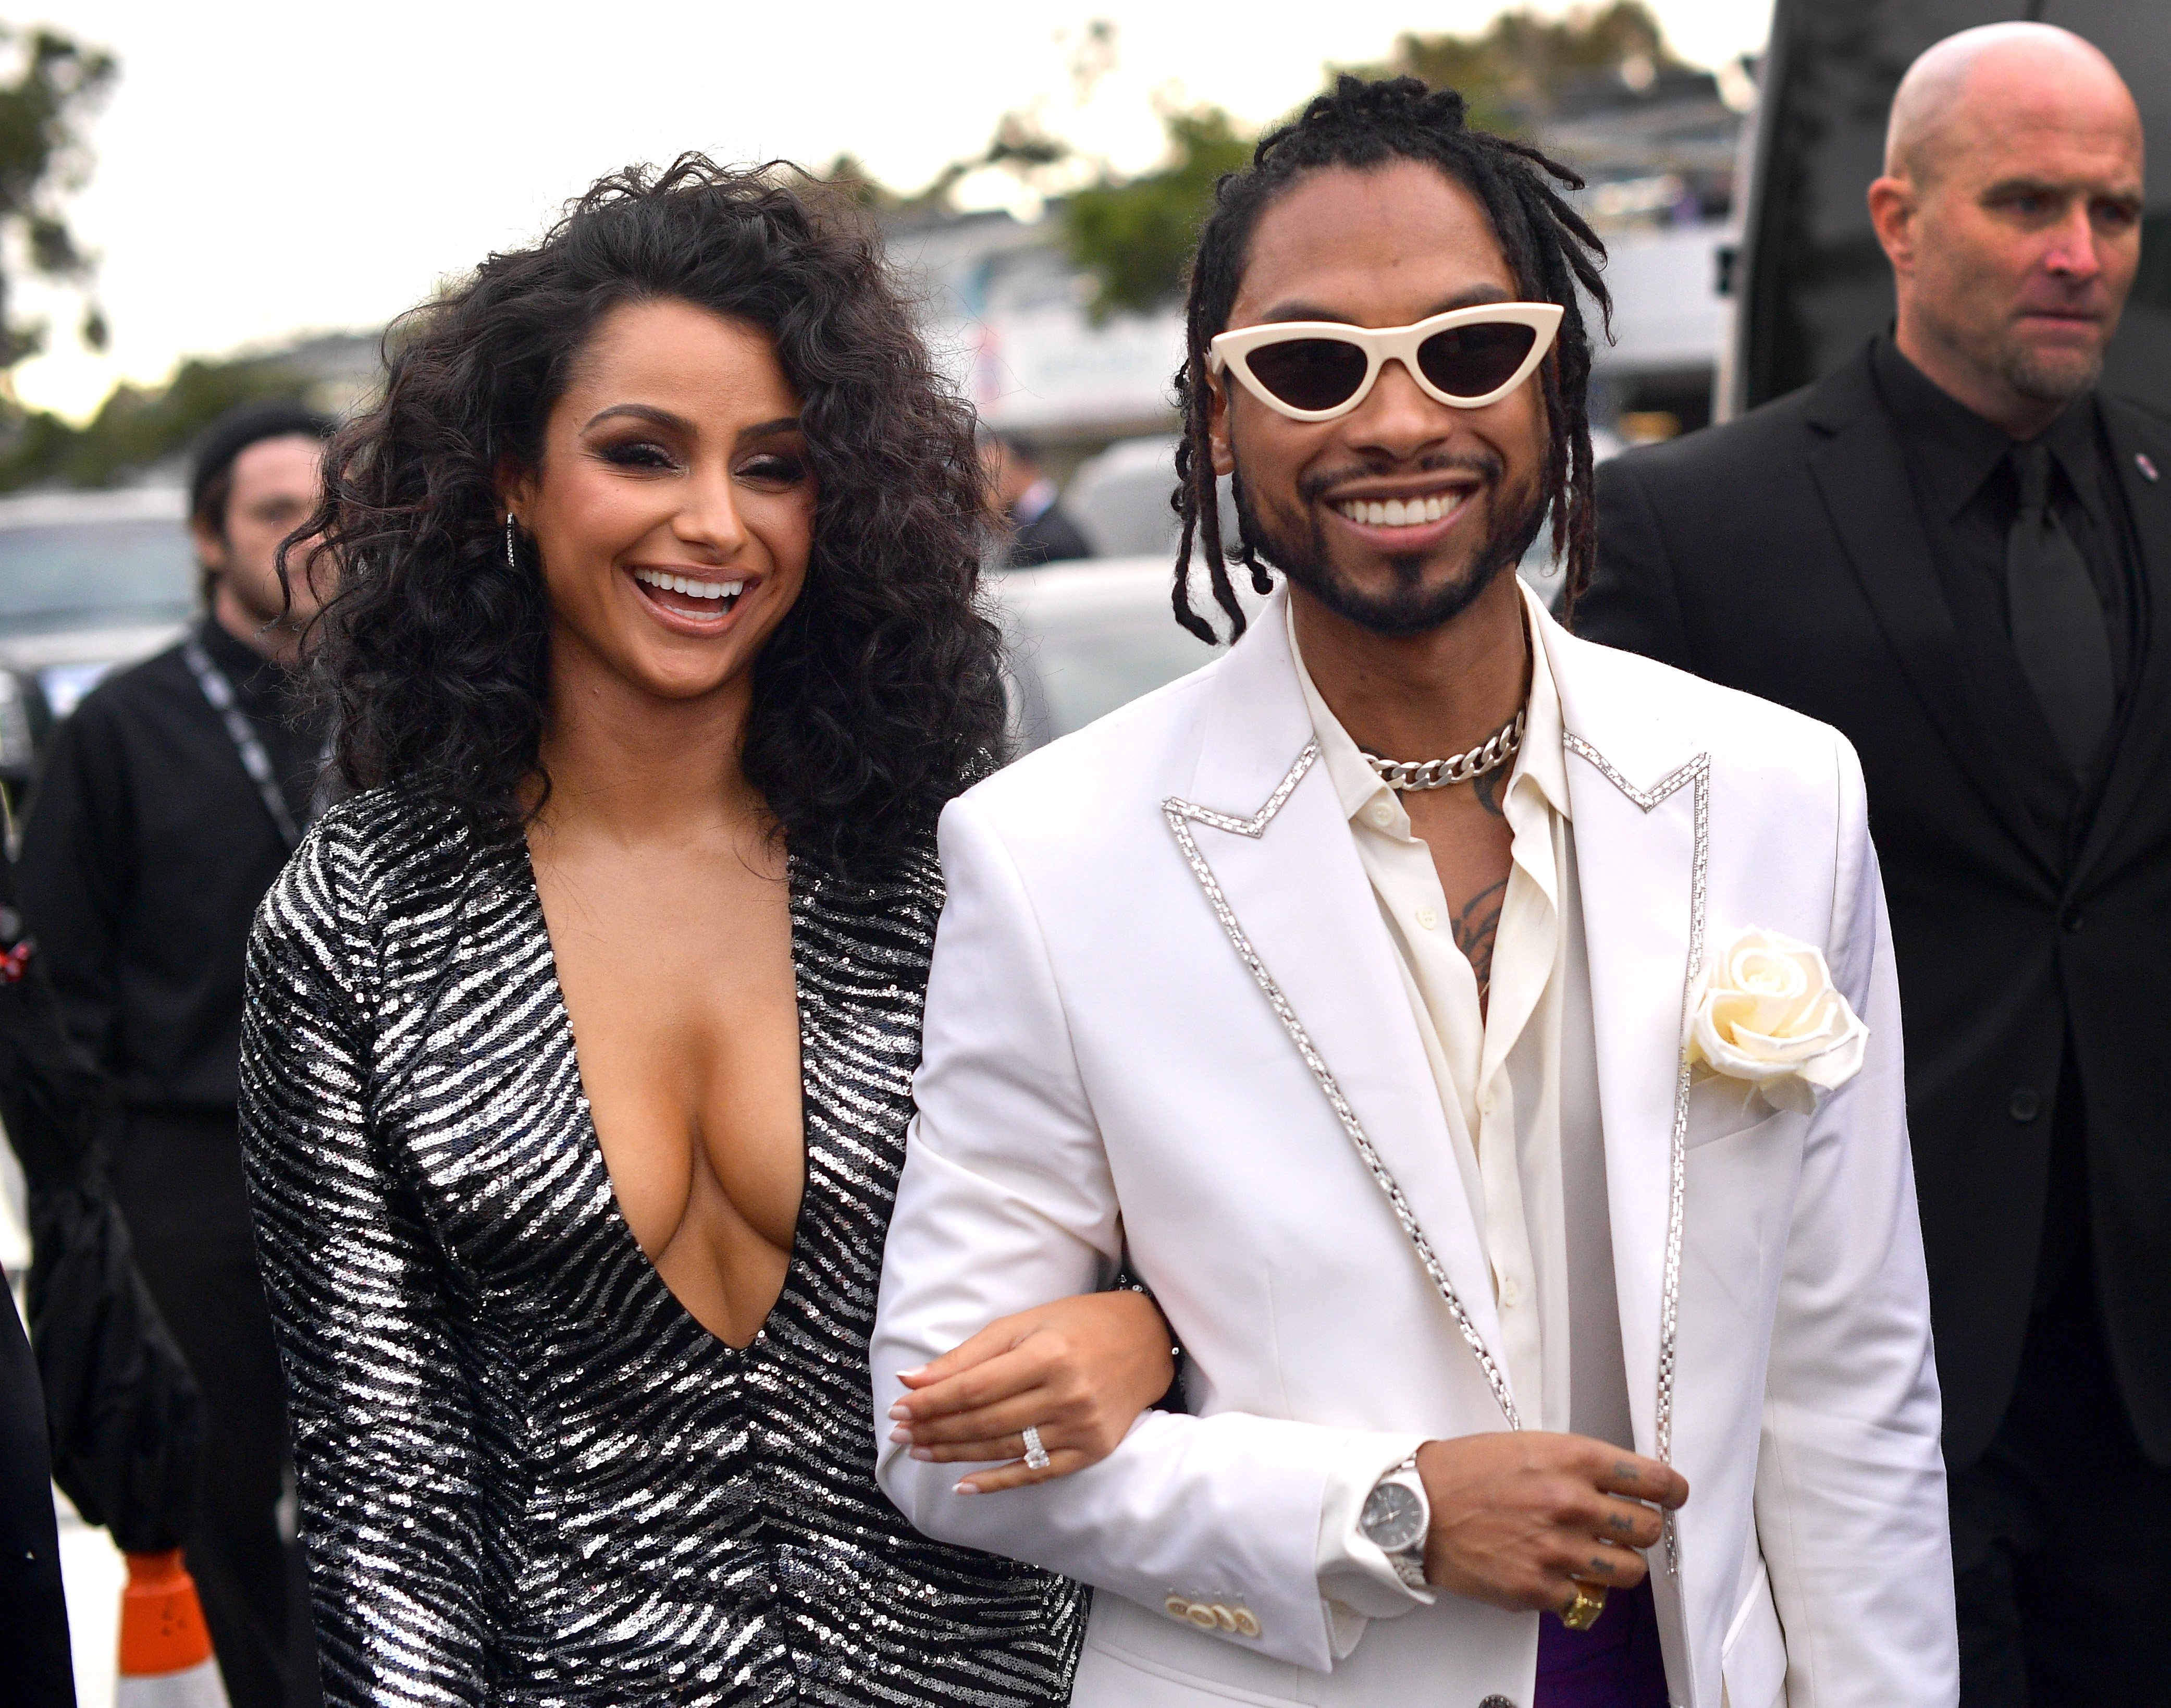 Miguel and Nazanin Mandi arrive at the 61st Annual GRAMMY Awards on February 10, 2019 in Los Angeles, California. | Photo by Matt Winkelmeyer/Getty Images